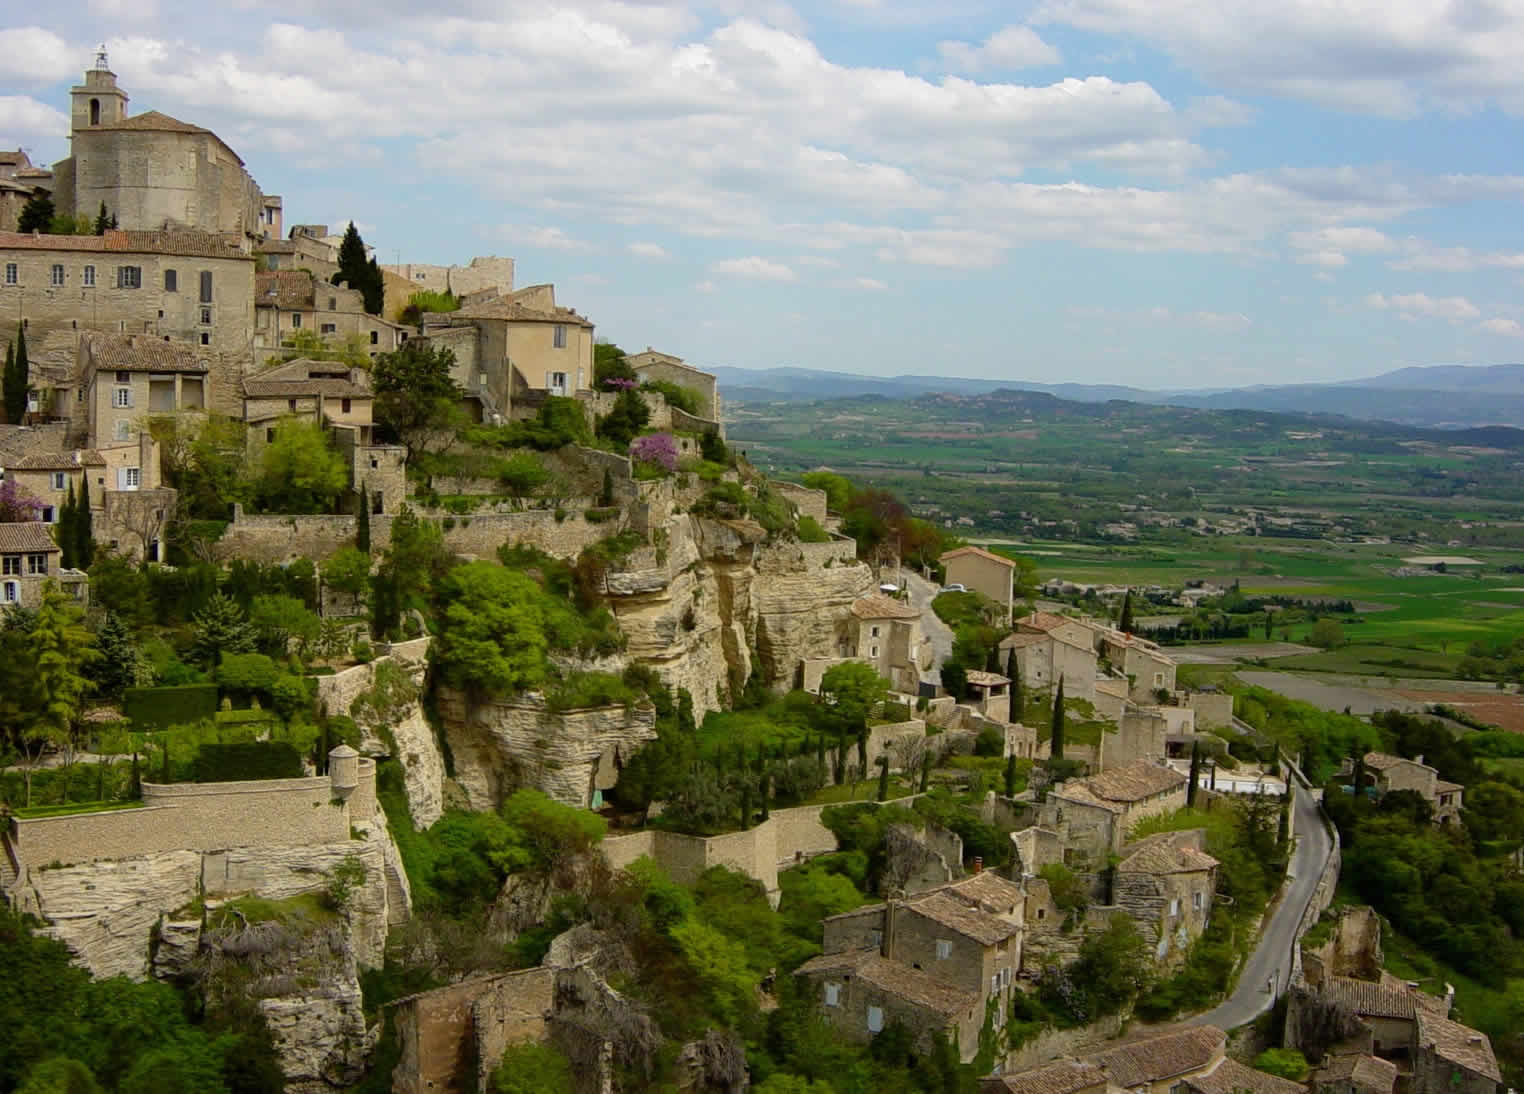 The Town of Gordes